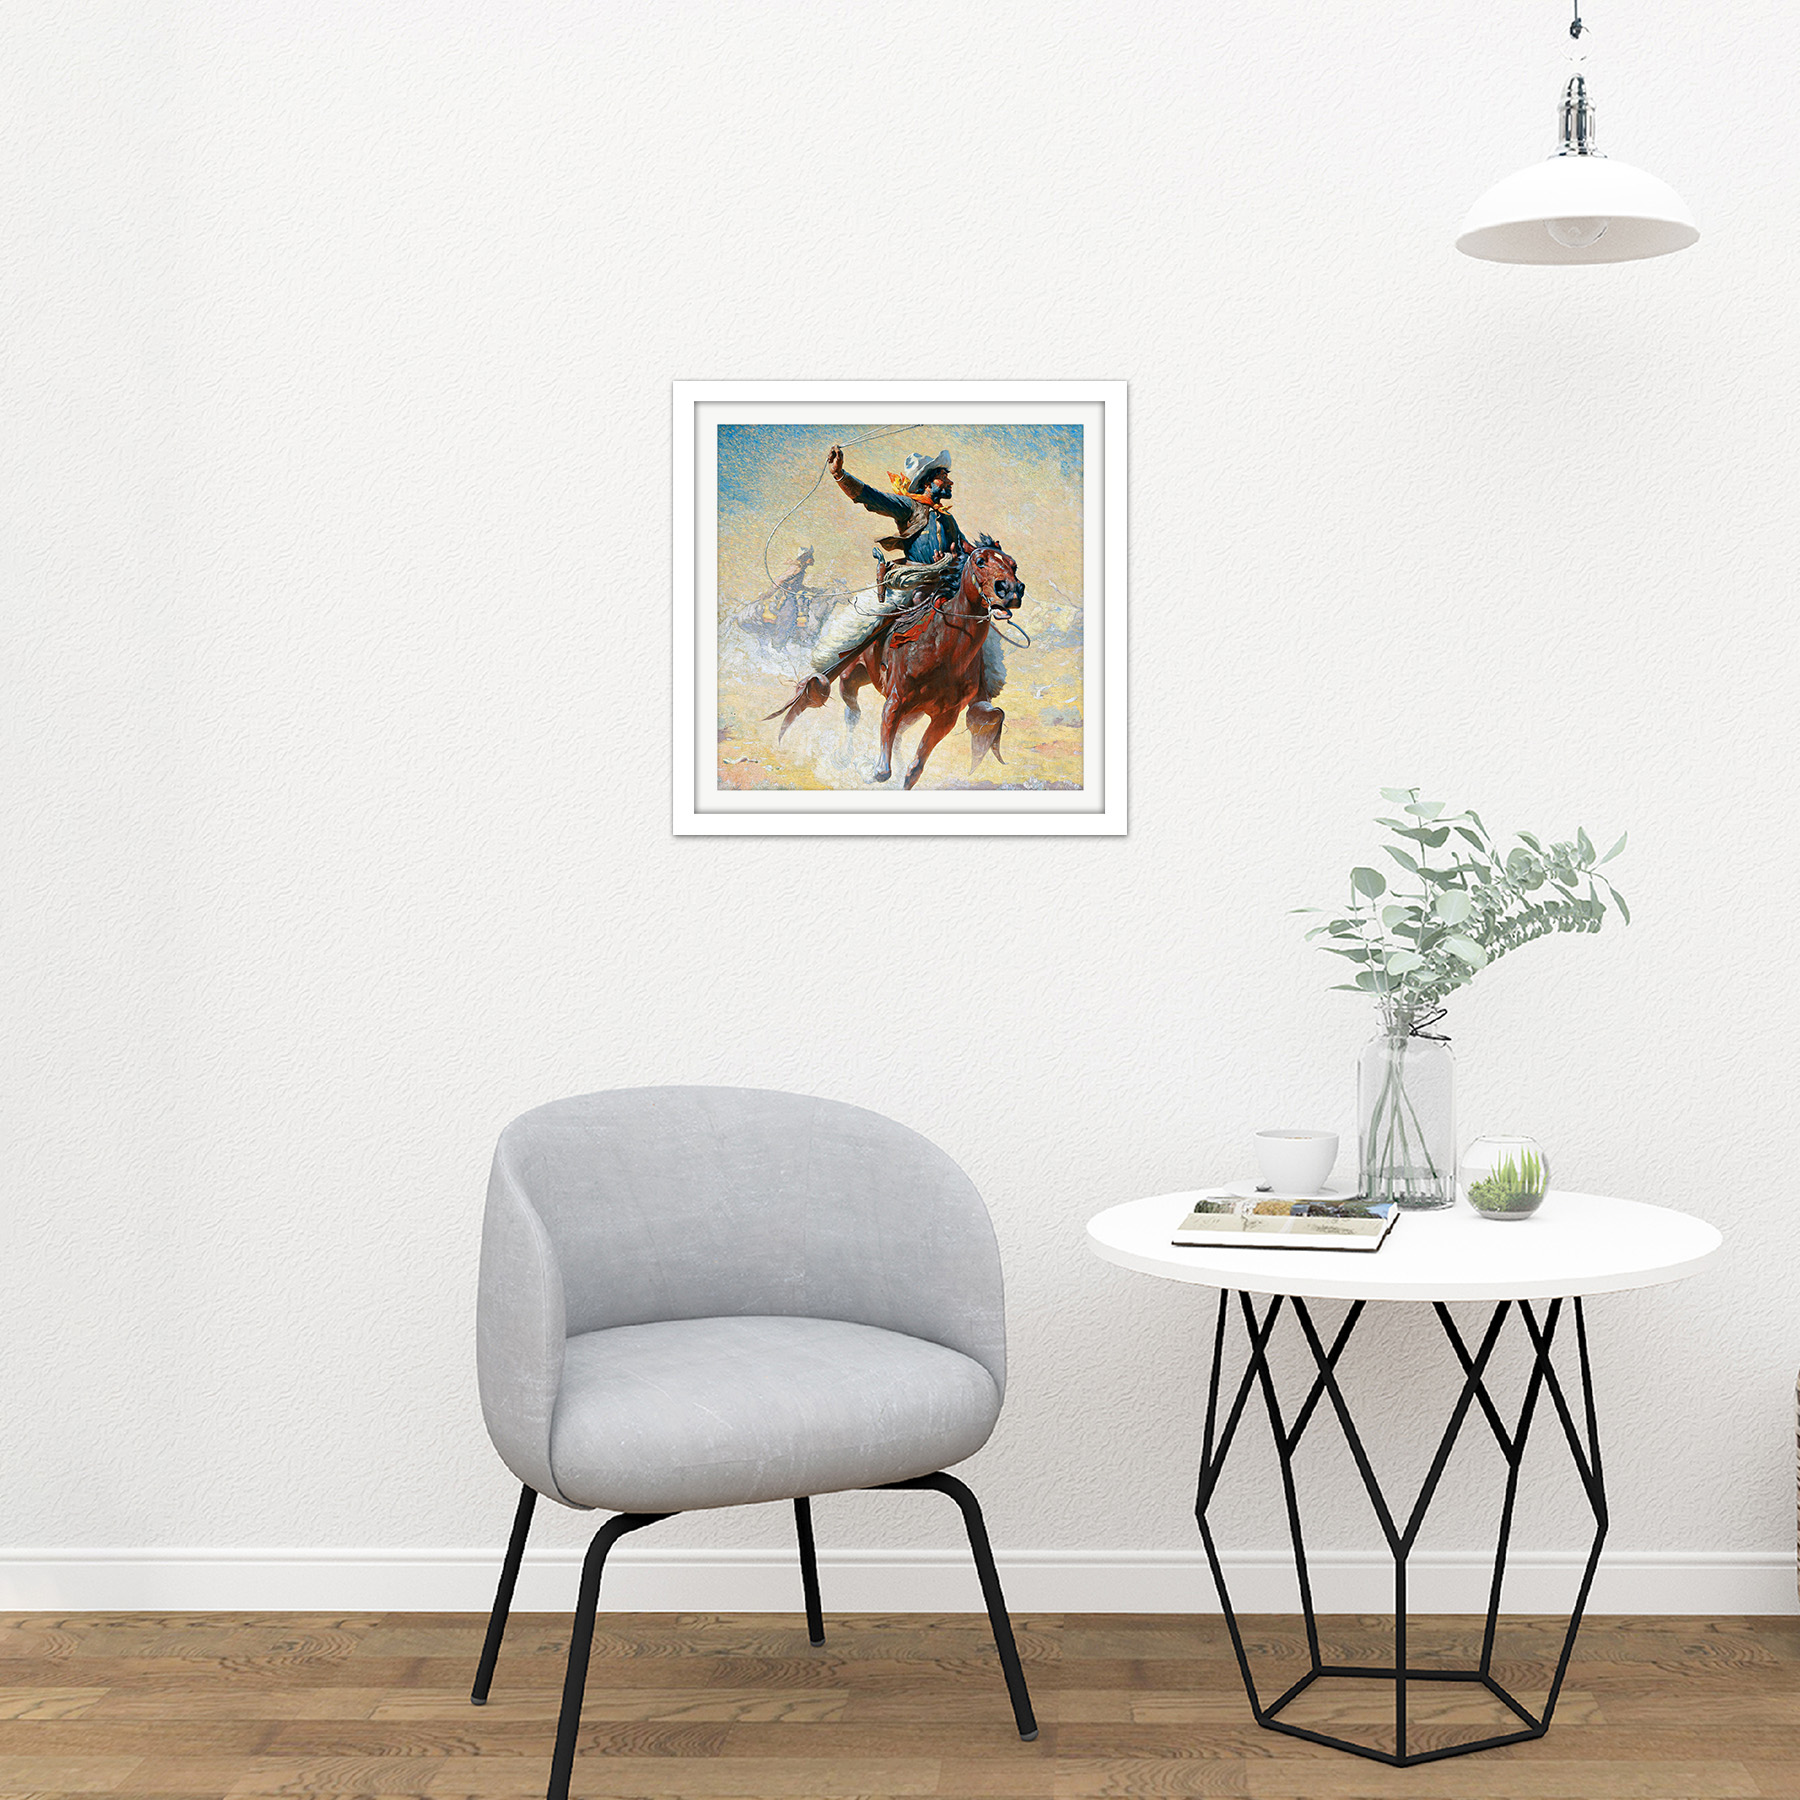 Leigh-The-Roping-Cowboy-Lasso-Horse-Painting-Square-Framed-Wall-Art-16X16-In thumbnail 15